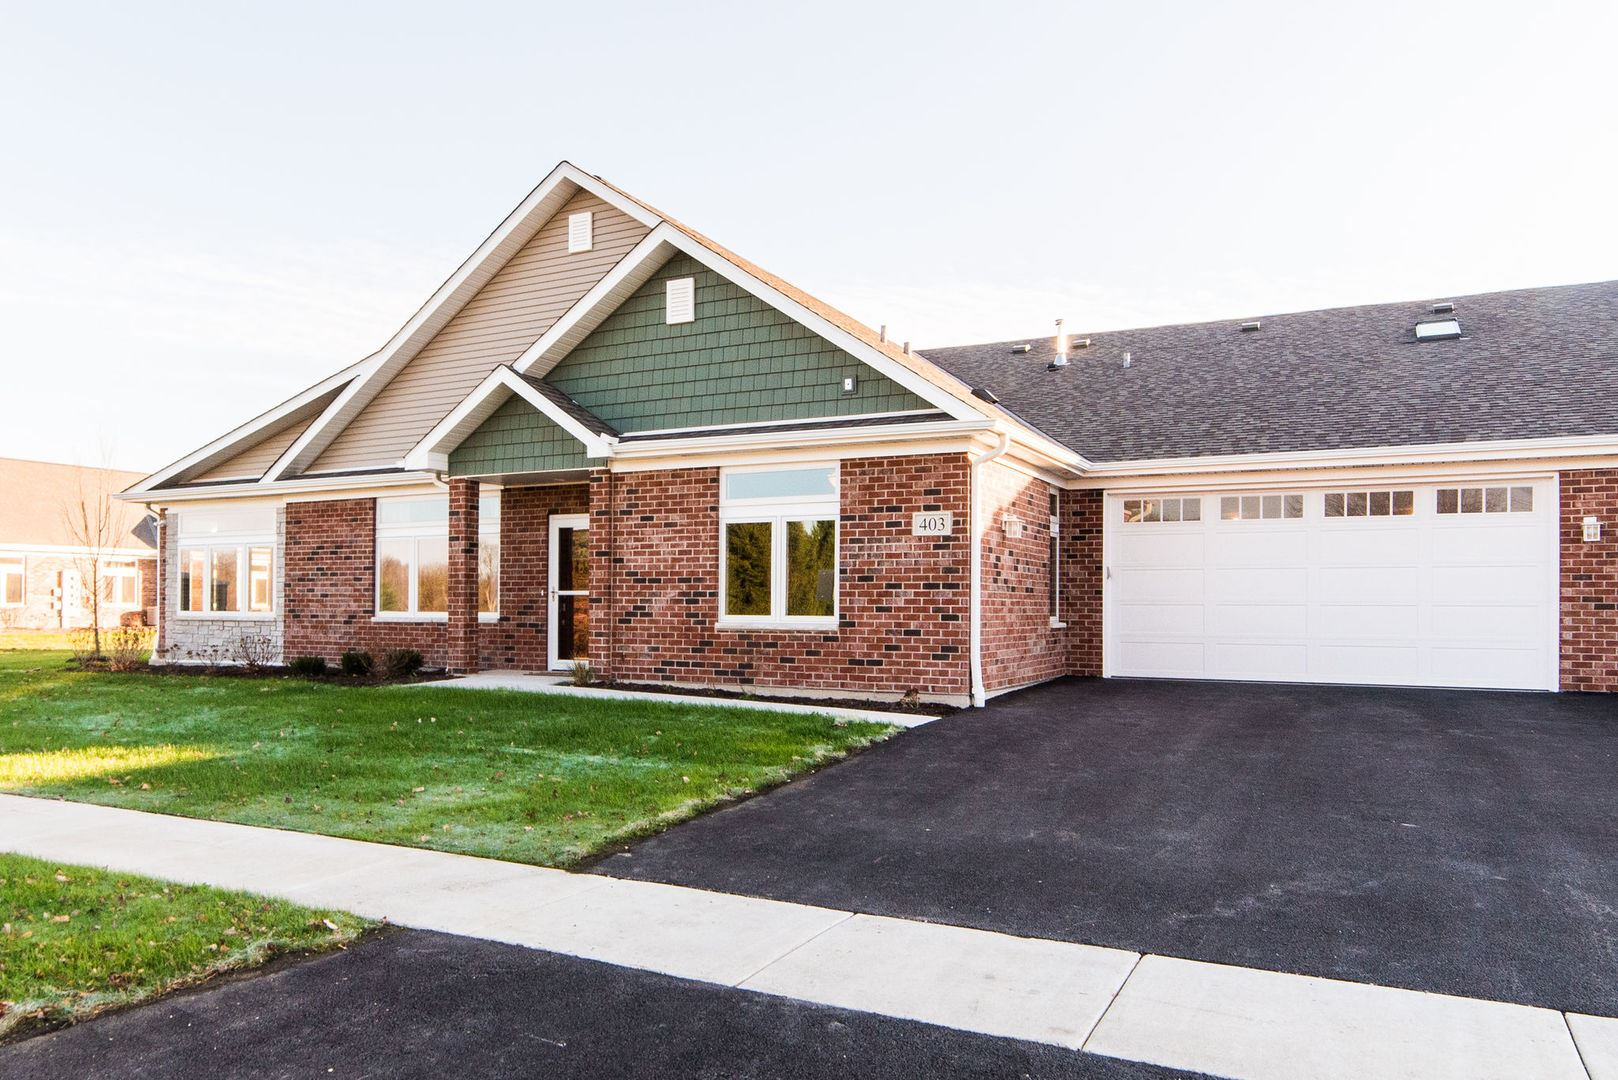 28 Briden Lane #28, Sycamore, IL 60178 - #: 10600028